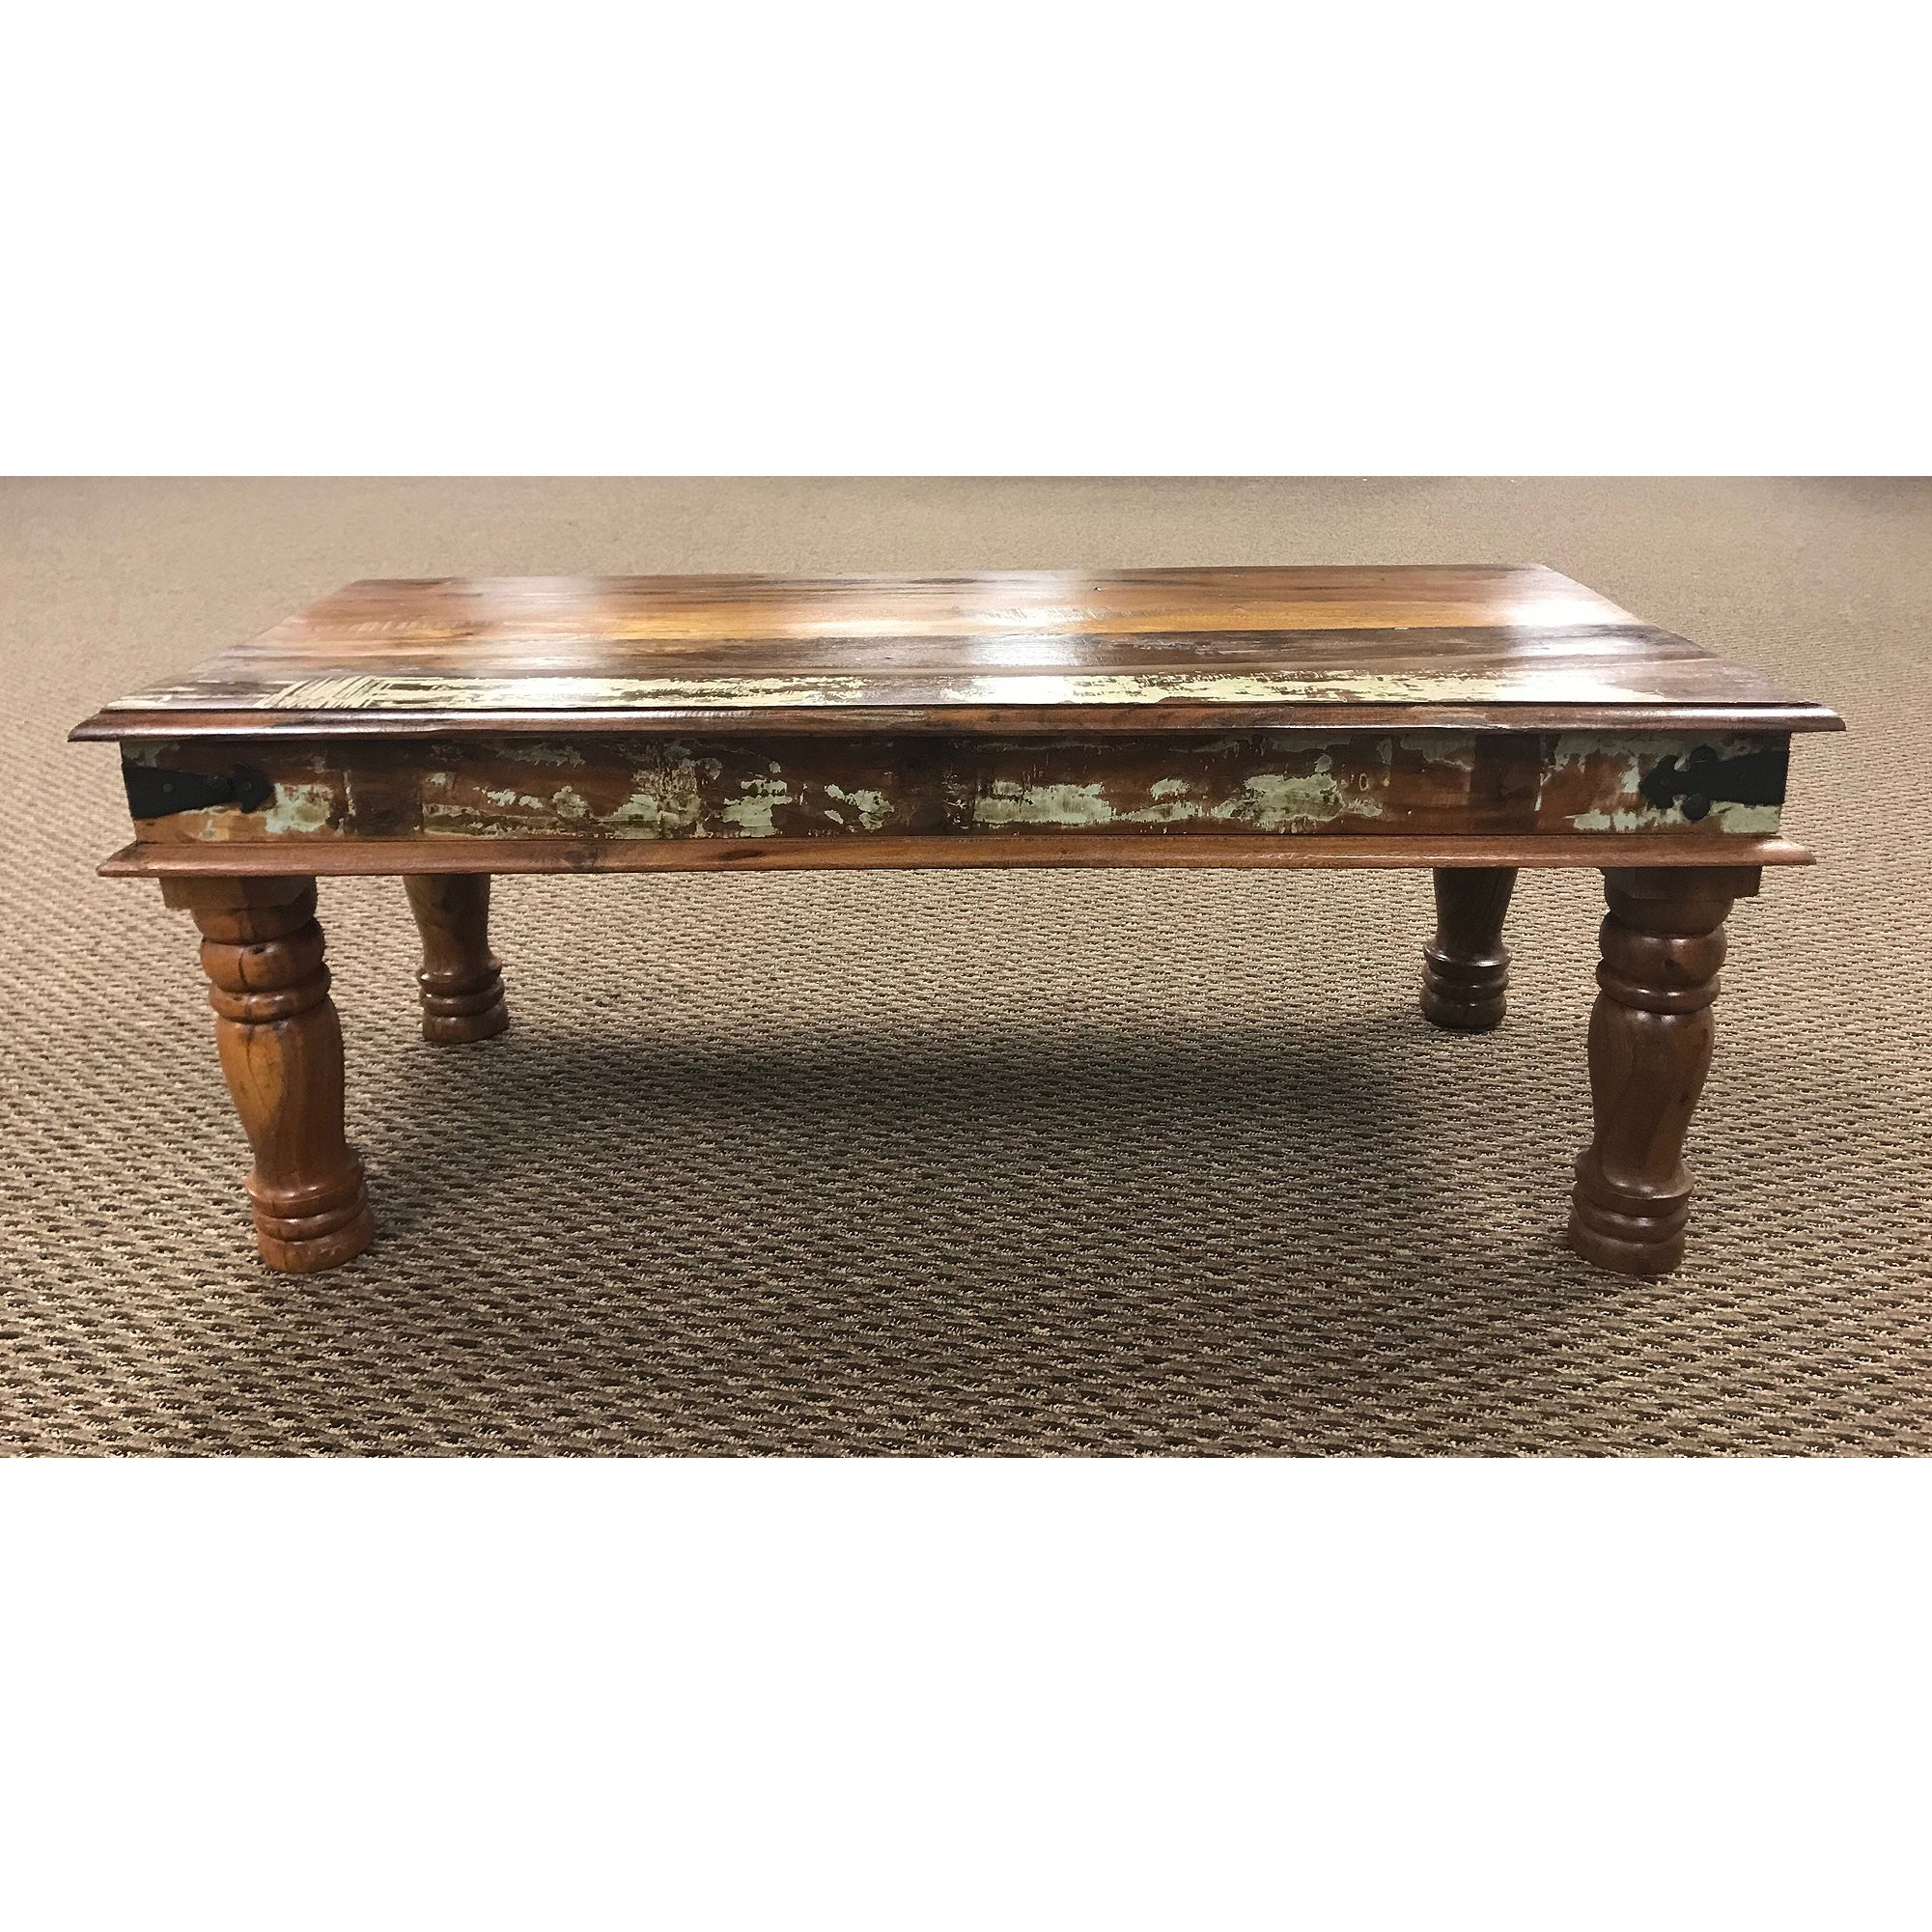 Rustic Vintage Lacquer Solid Wood Round Leg Coffee Table Bai S